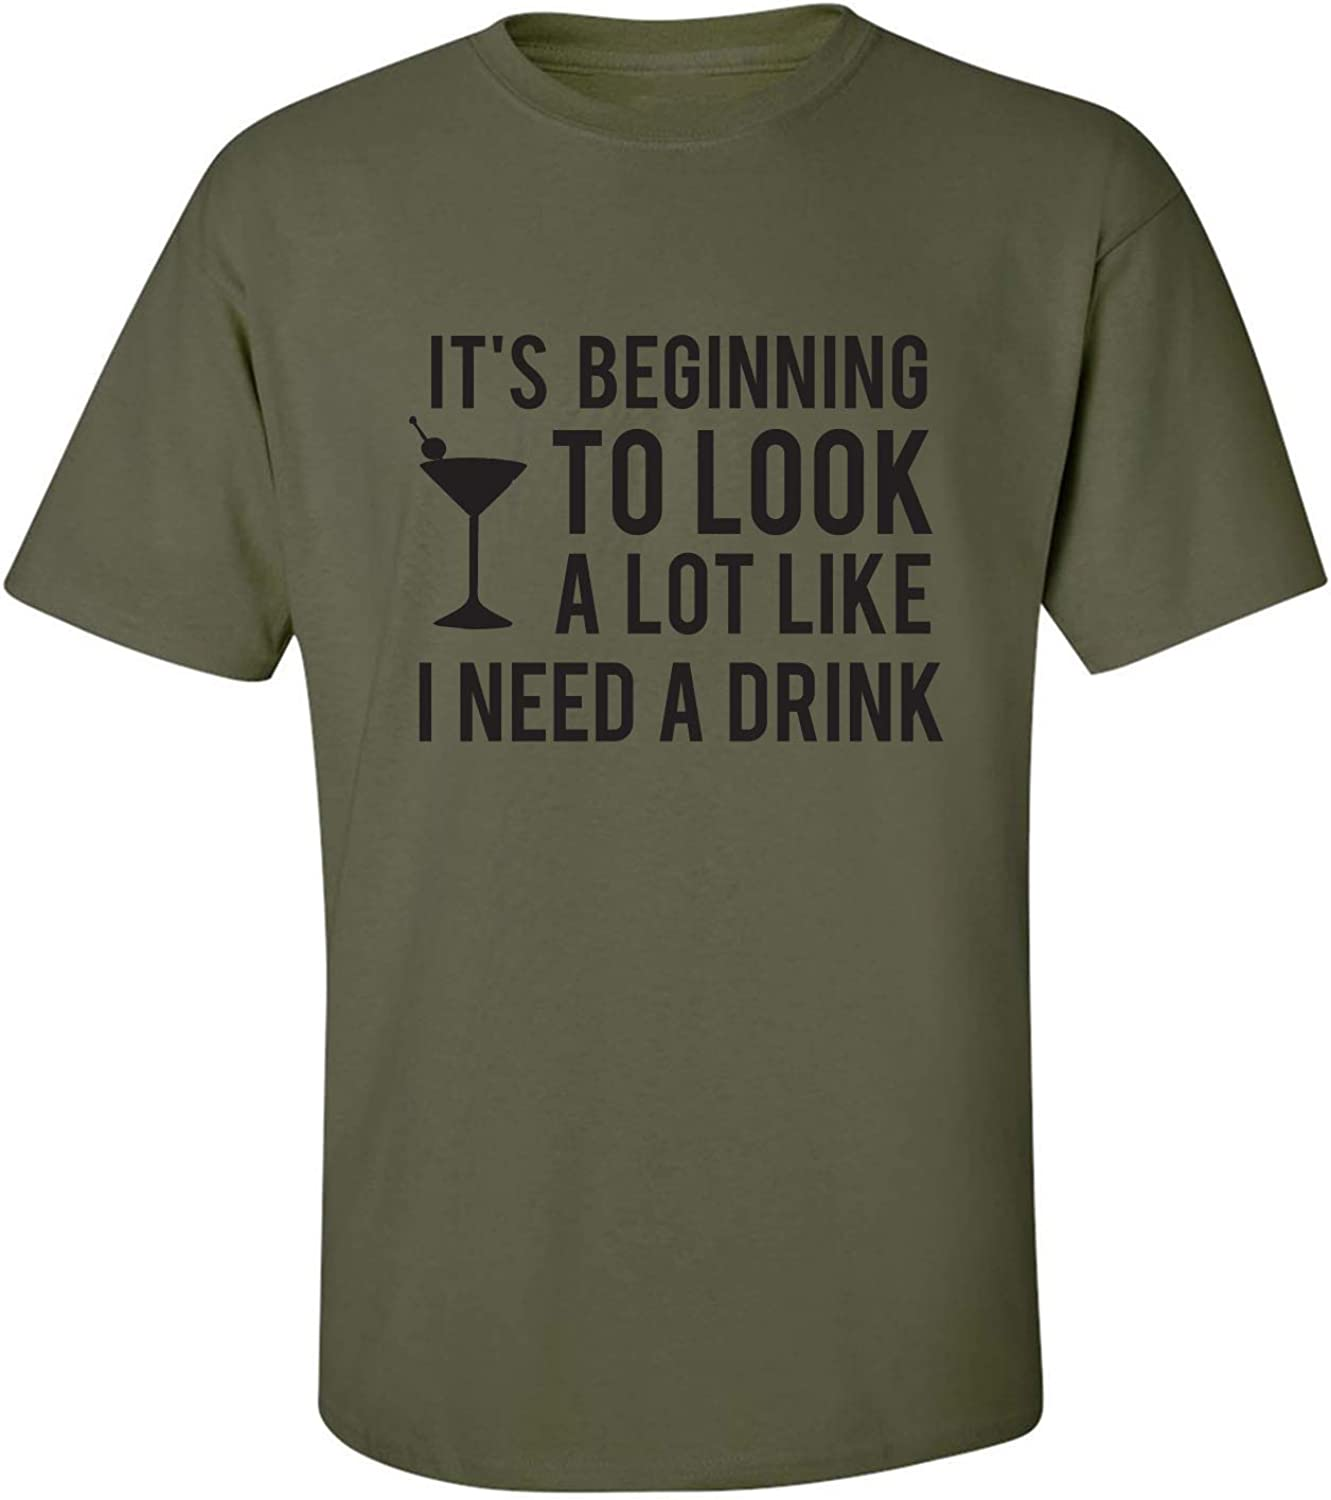 It's Beginning to Look A Lot Like Adult T-Shirt in Military Green - XXXXX-Large